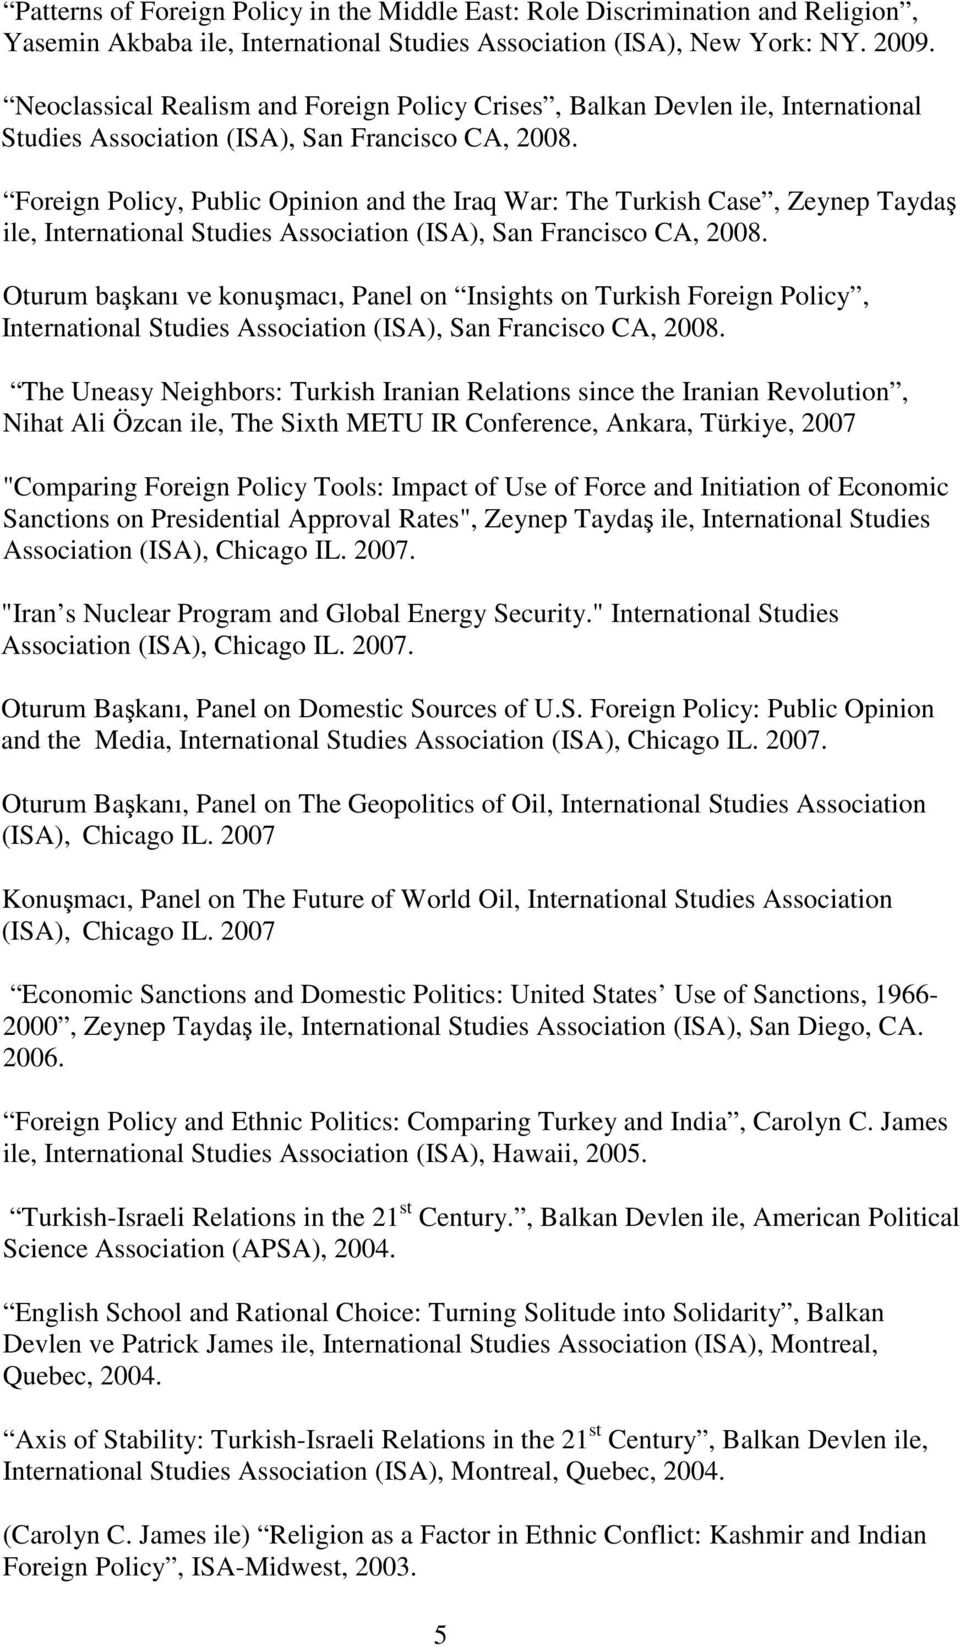 Foreign Policy, Public Opinion and the Iraq War: The Turkish Case, Zeynep Taydaş ile, International Studies Association (ISA), San Francisco CA, 2008.